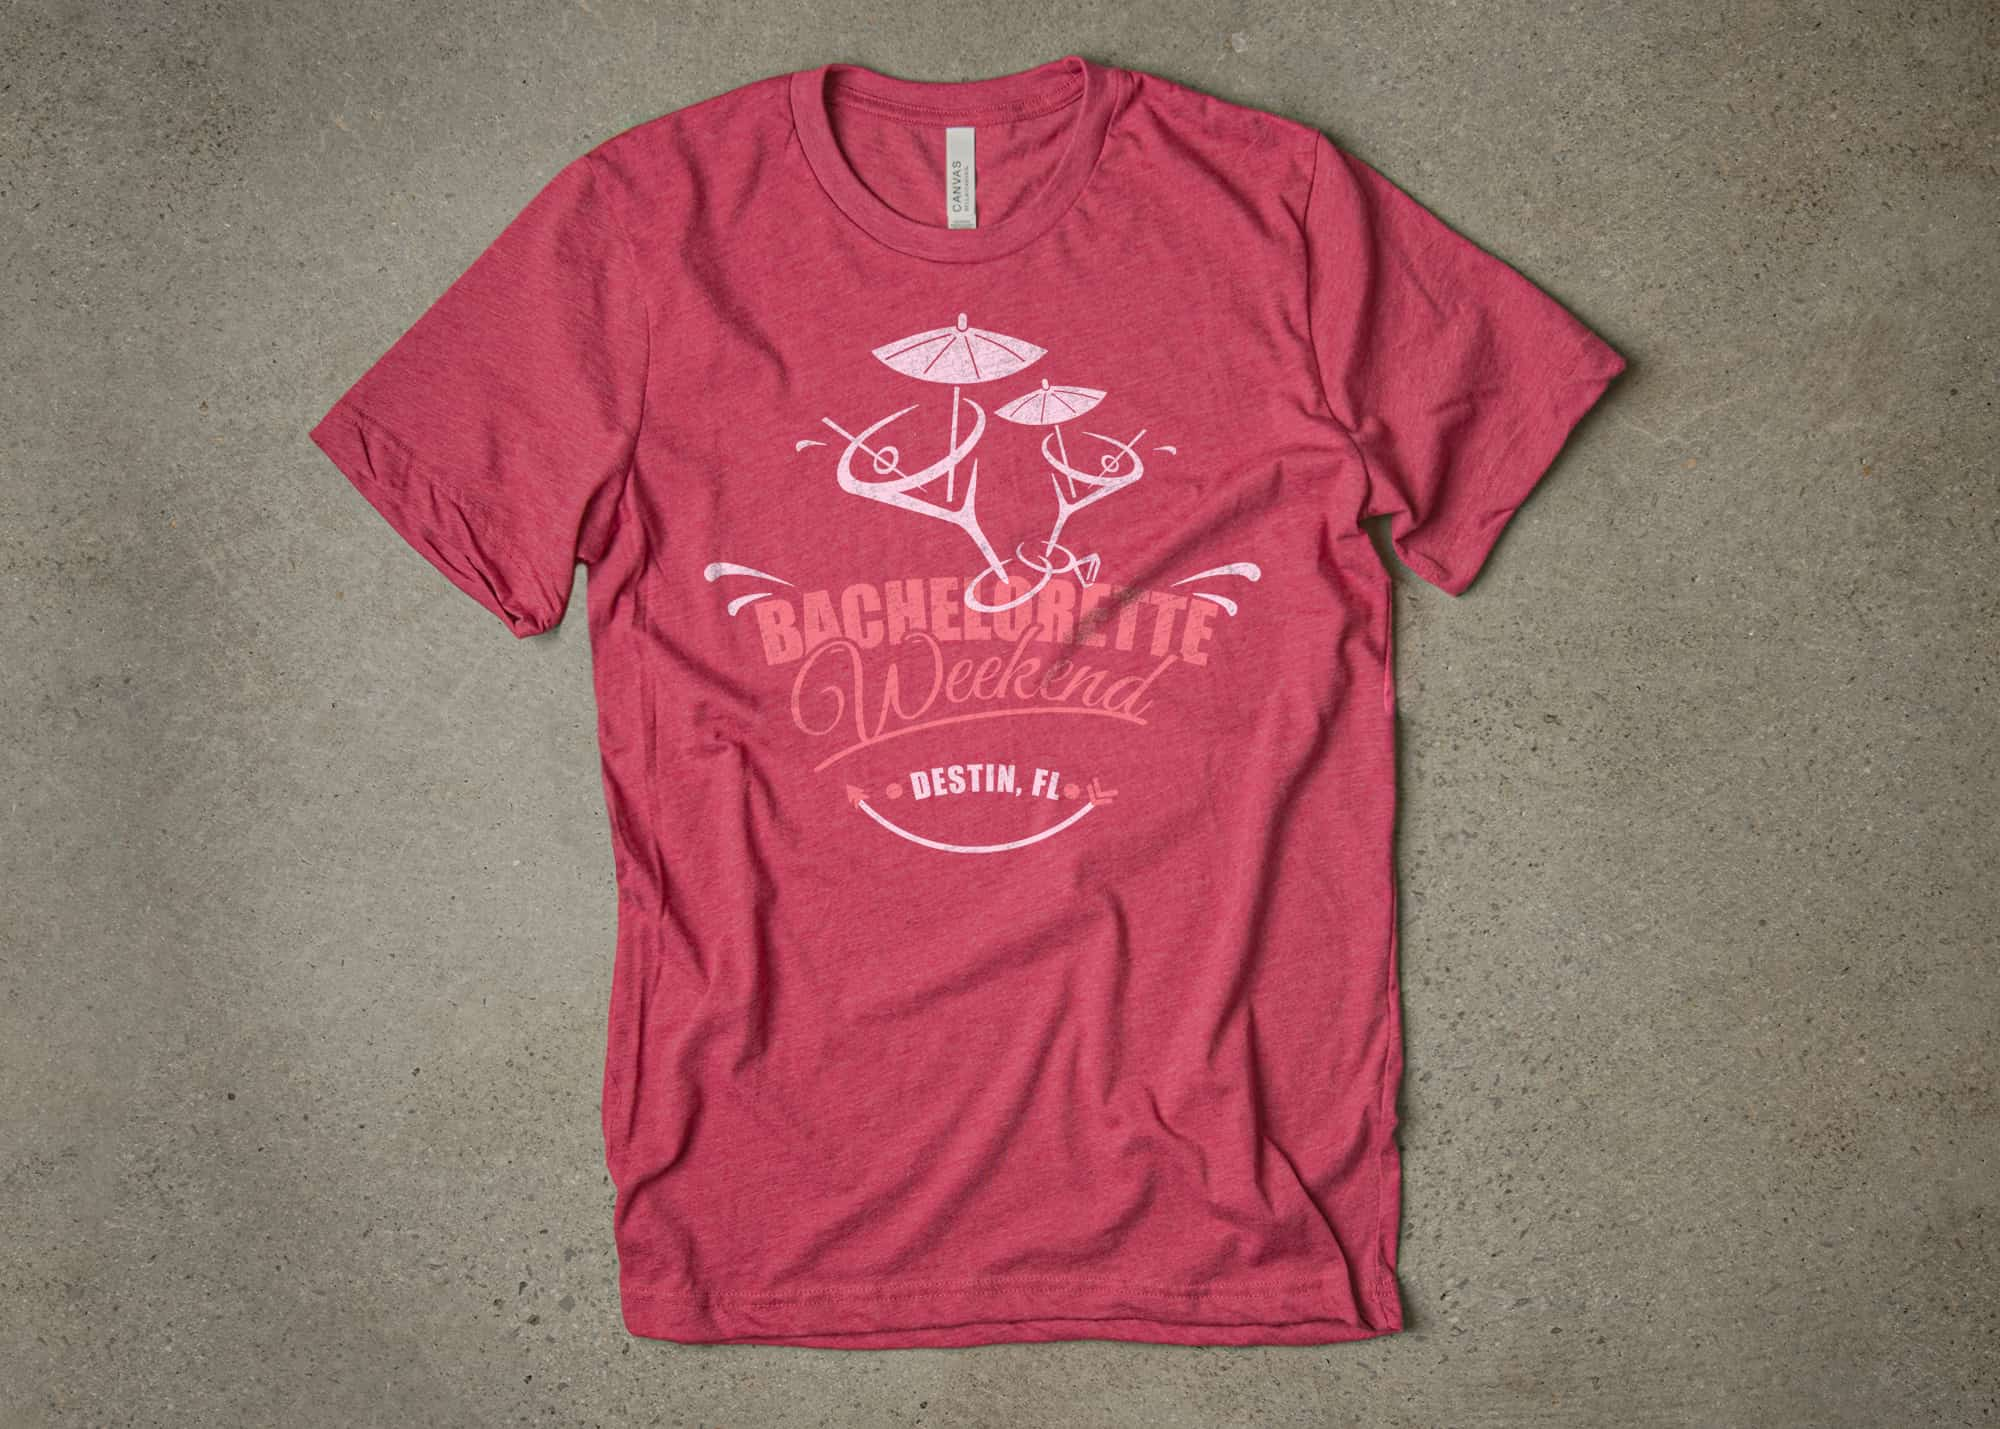 A bachelorette party t-shirt design made using the strawberries and cream color pallet.